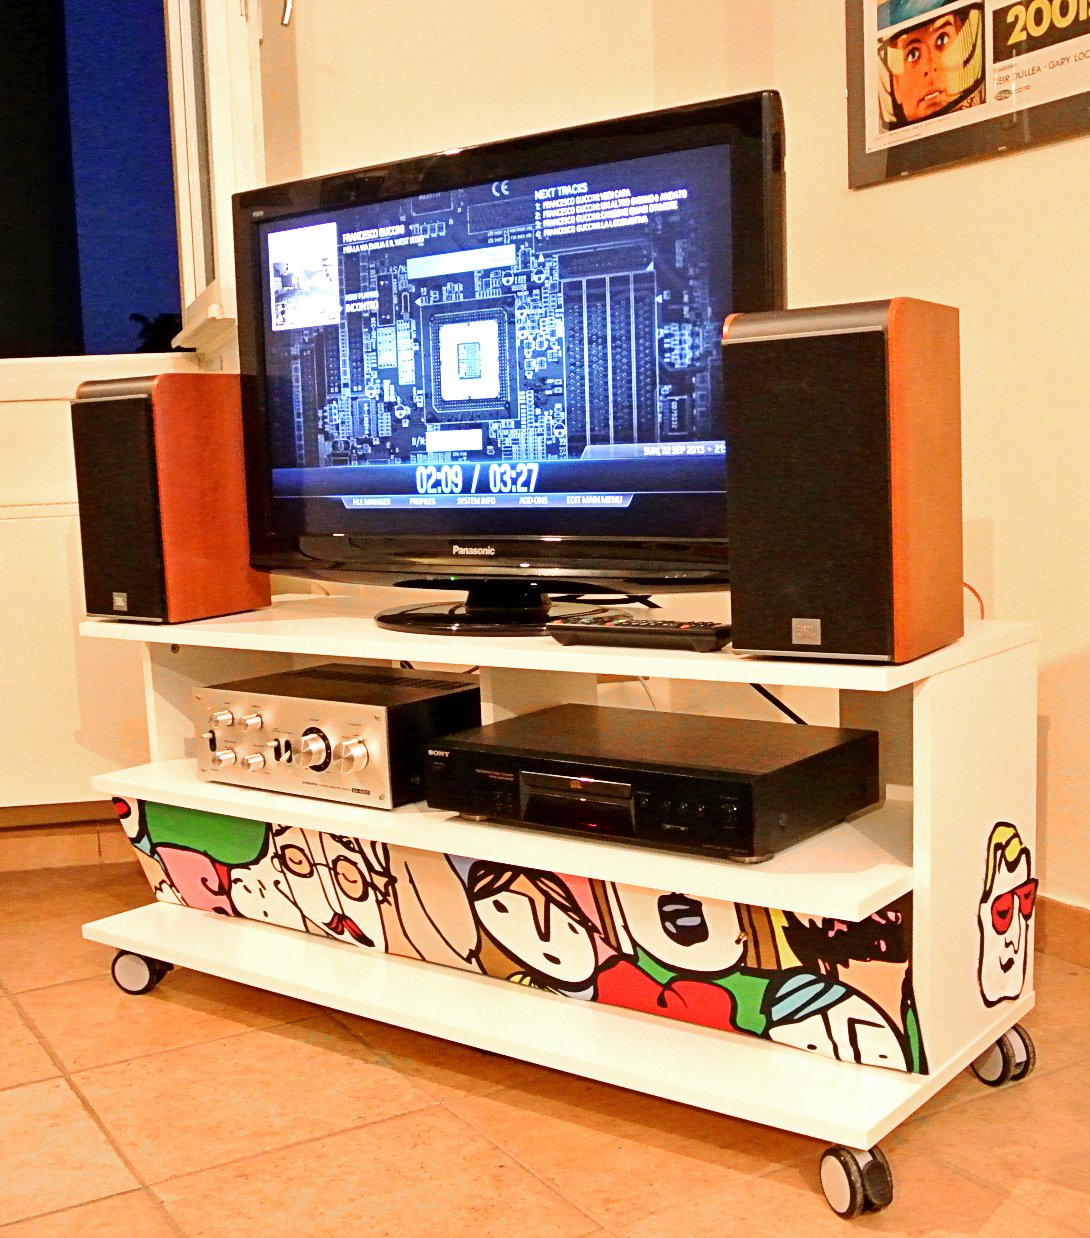 A PC enclosed into an IKEA Benno TV furniture